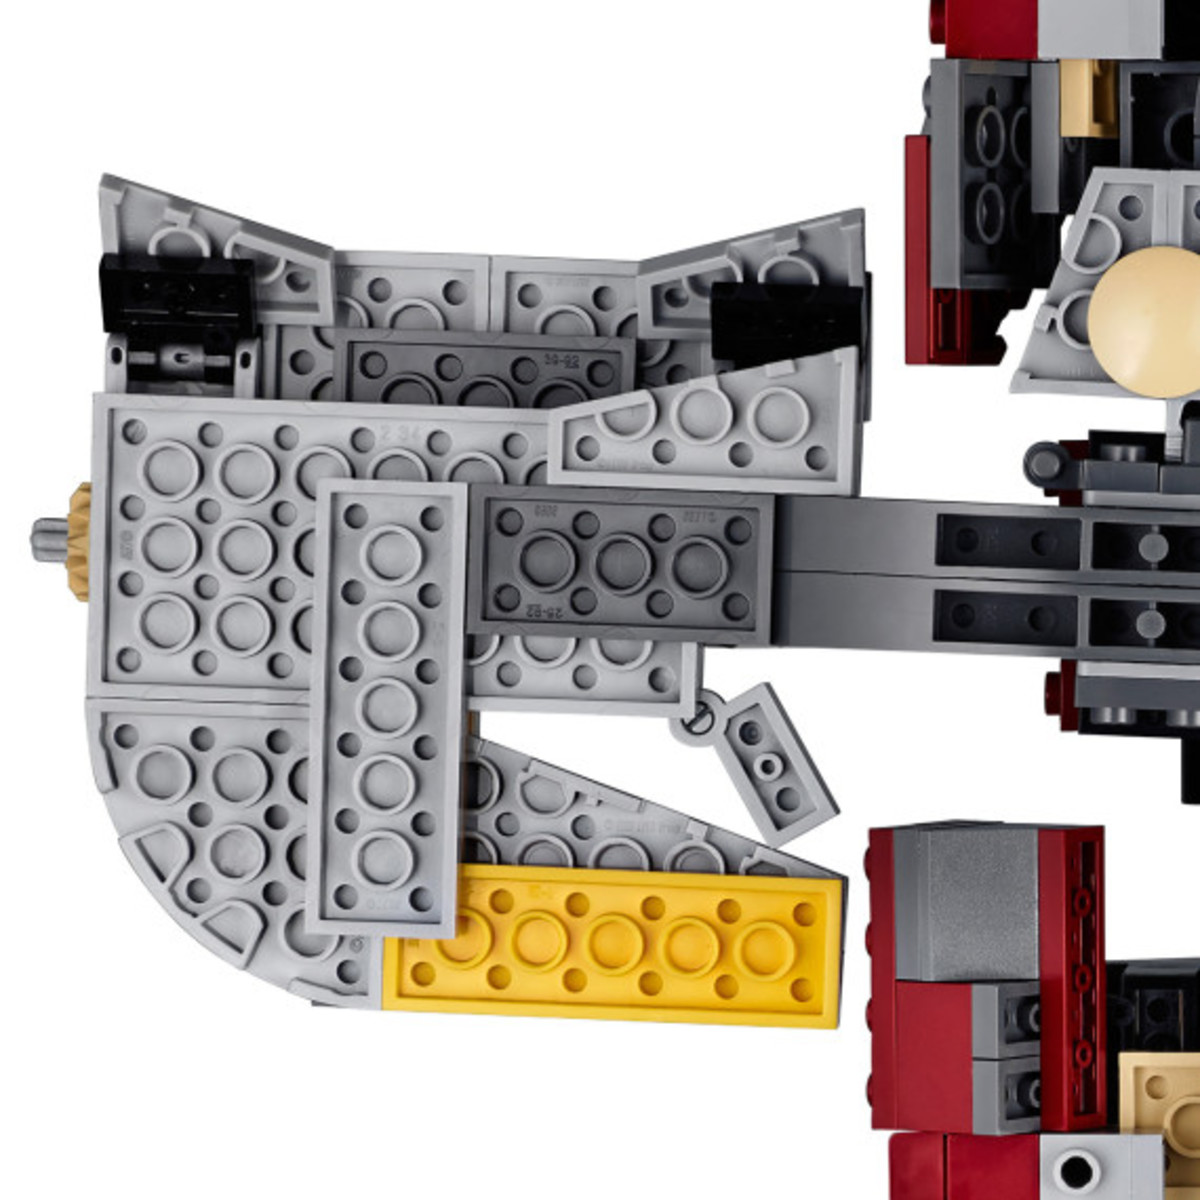 Star Wars x LEGO Ultimate Collector's Series: Boba Fett's Slave I Kit   Release Info - 10